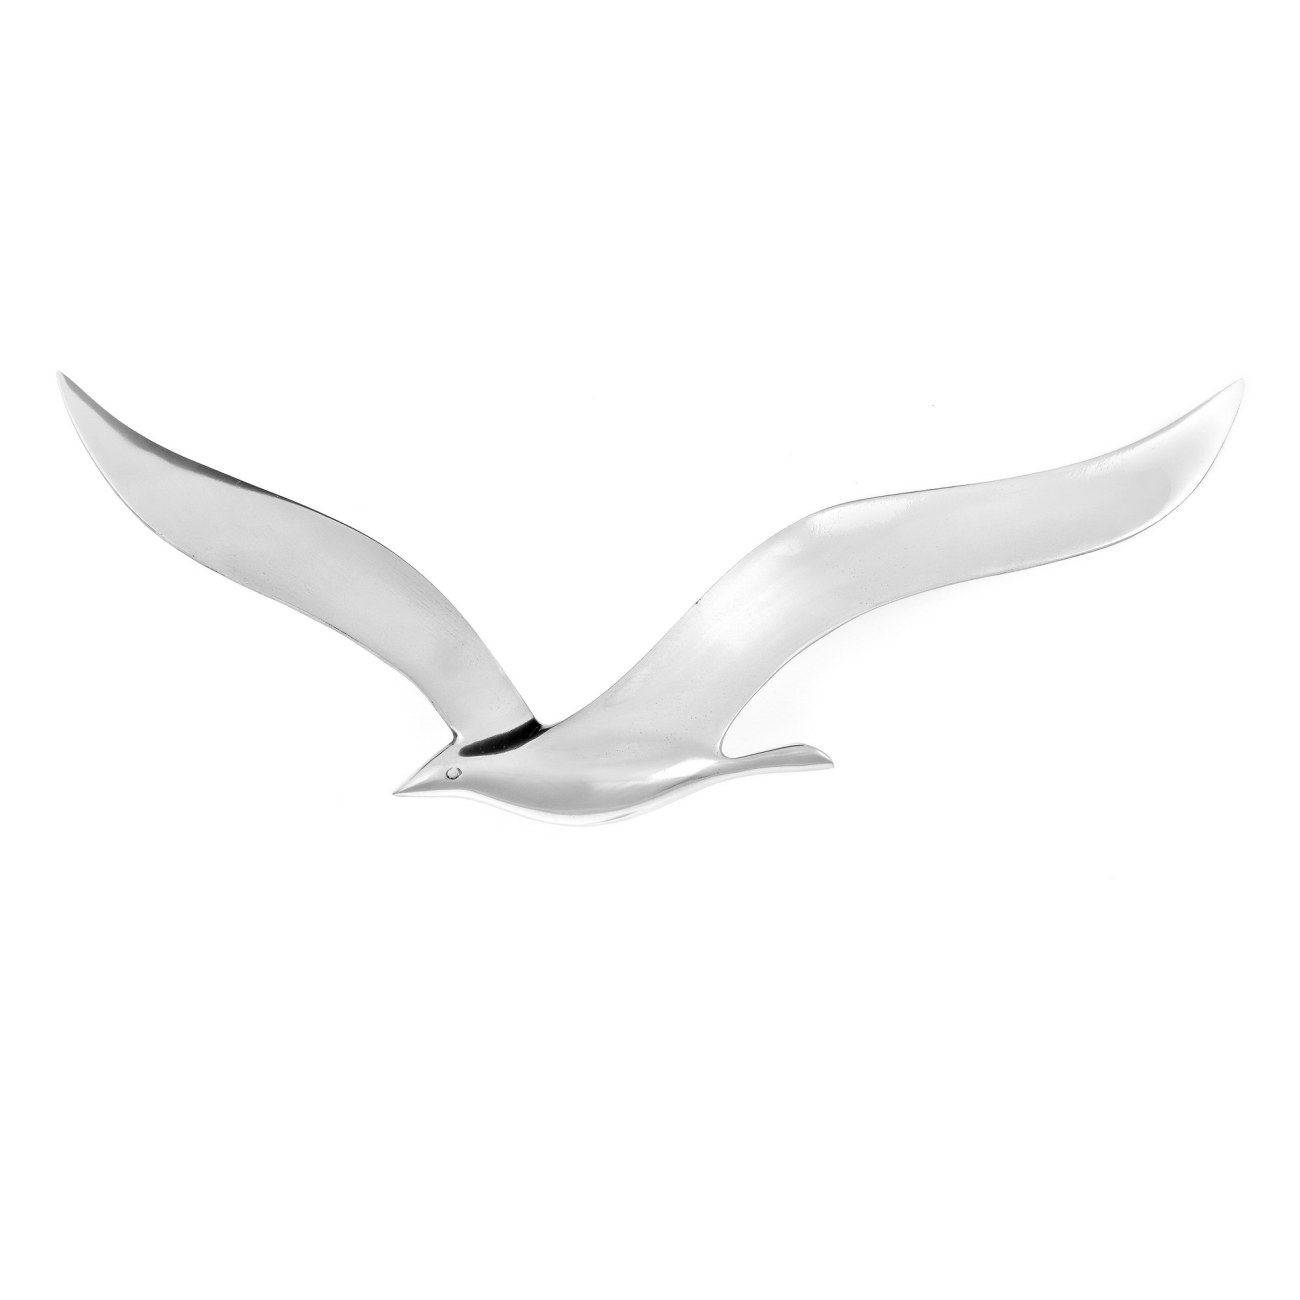 Flying Seagull Bird – Handmade Metal Wall Art Decor – Silver Intended For Most Recent Seagull Metal Wall Art (View 8 of 20)